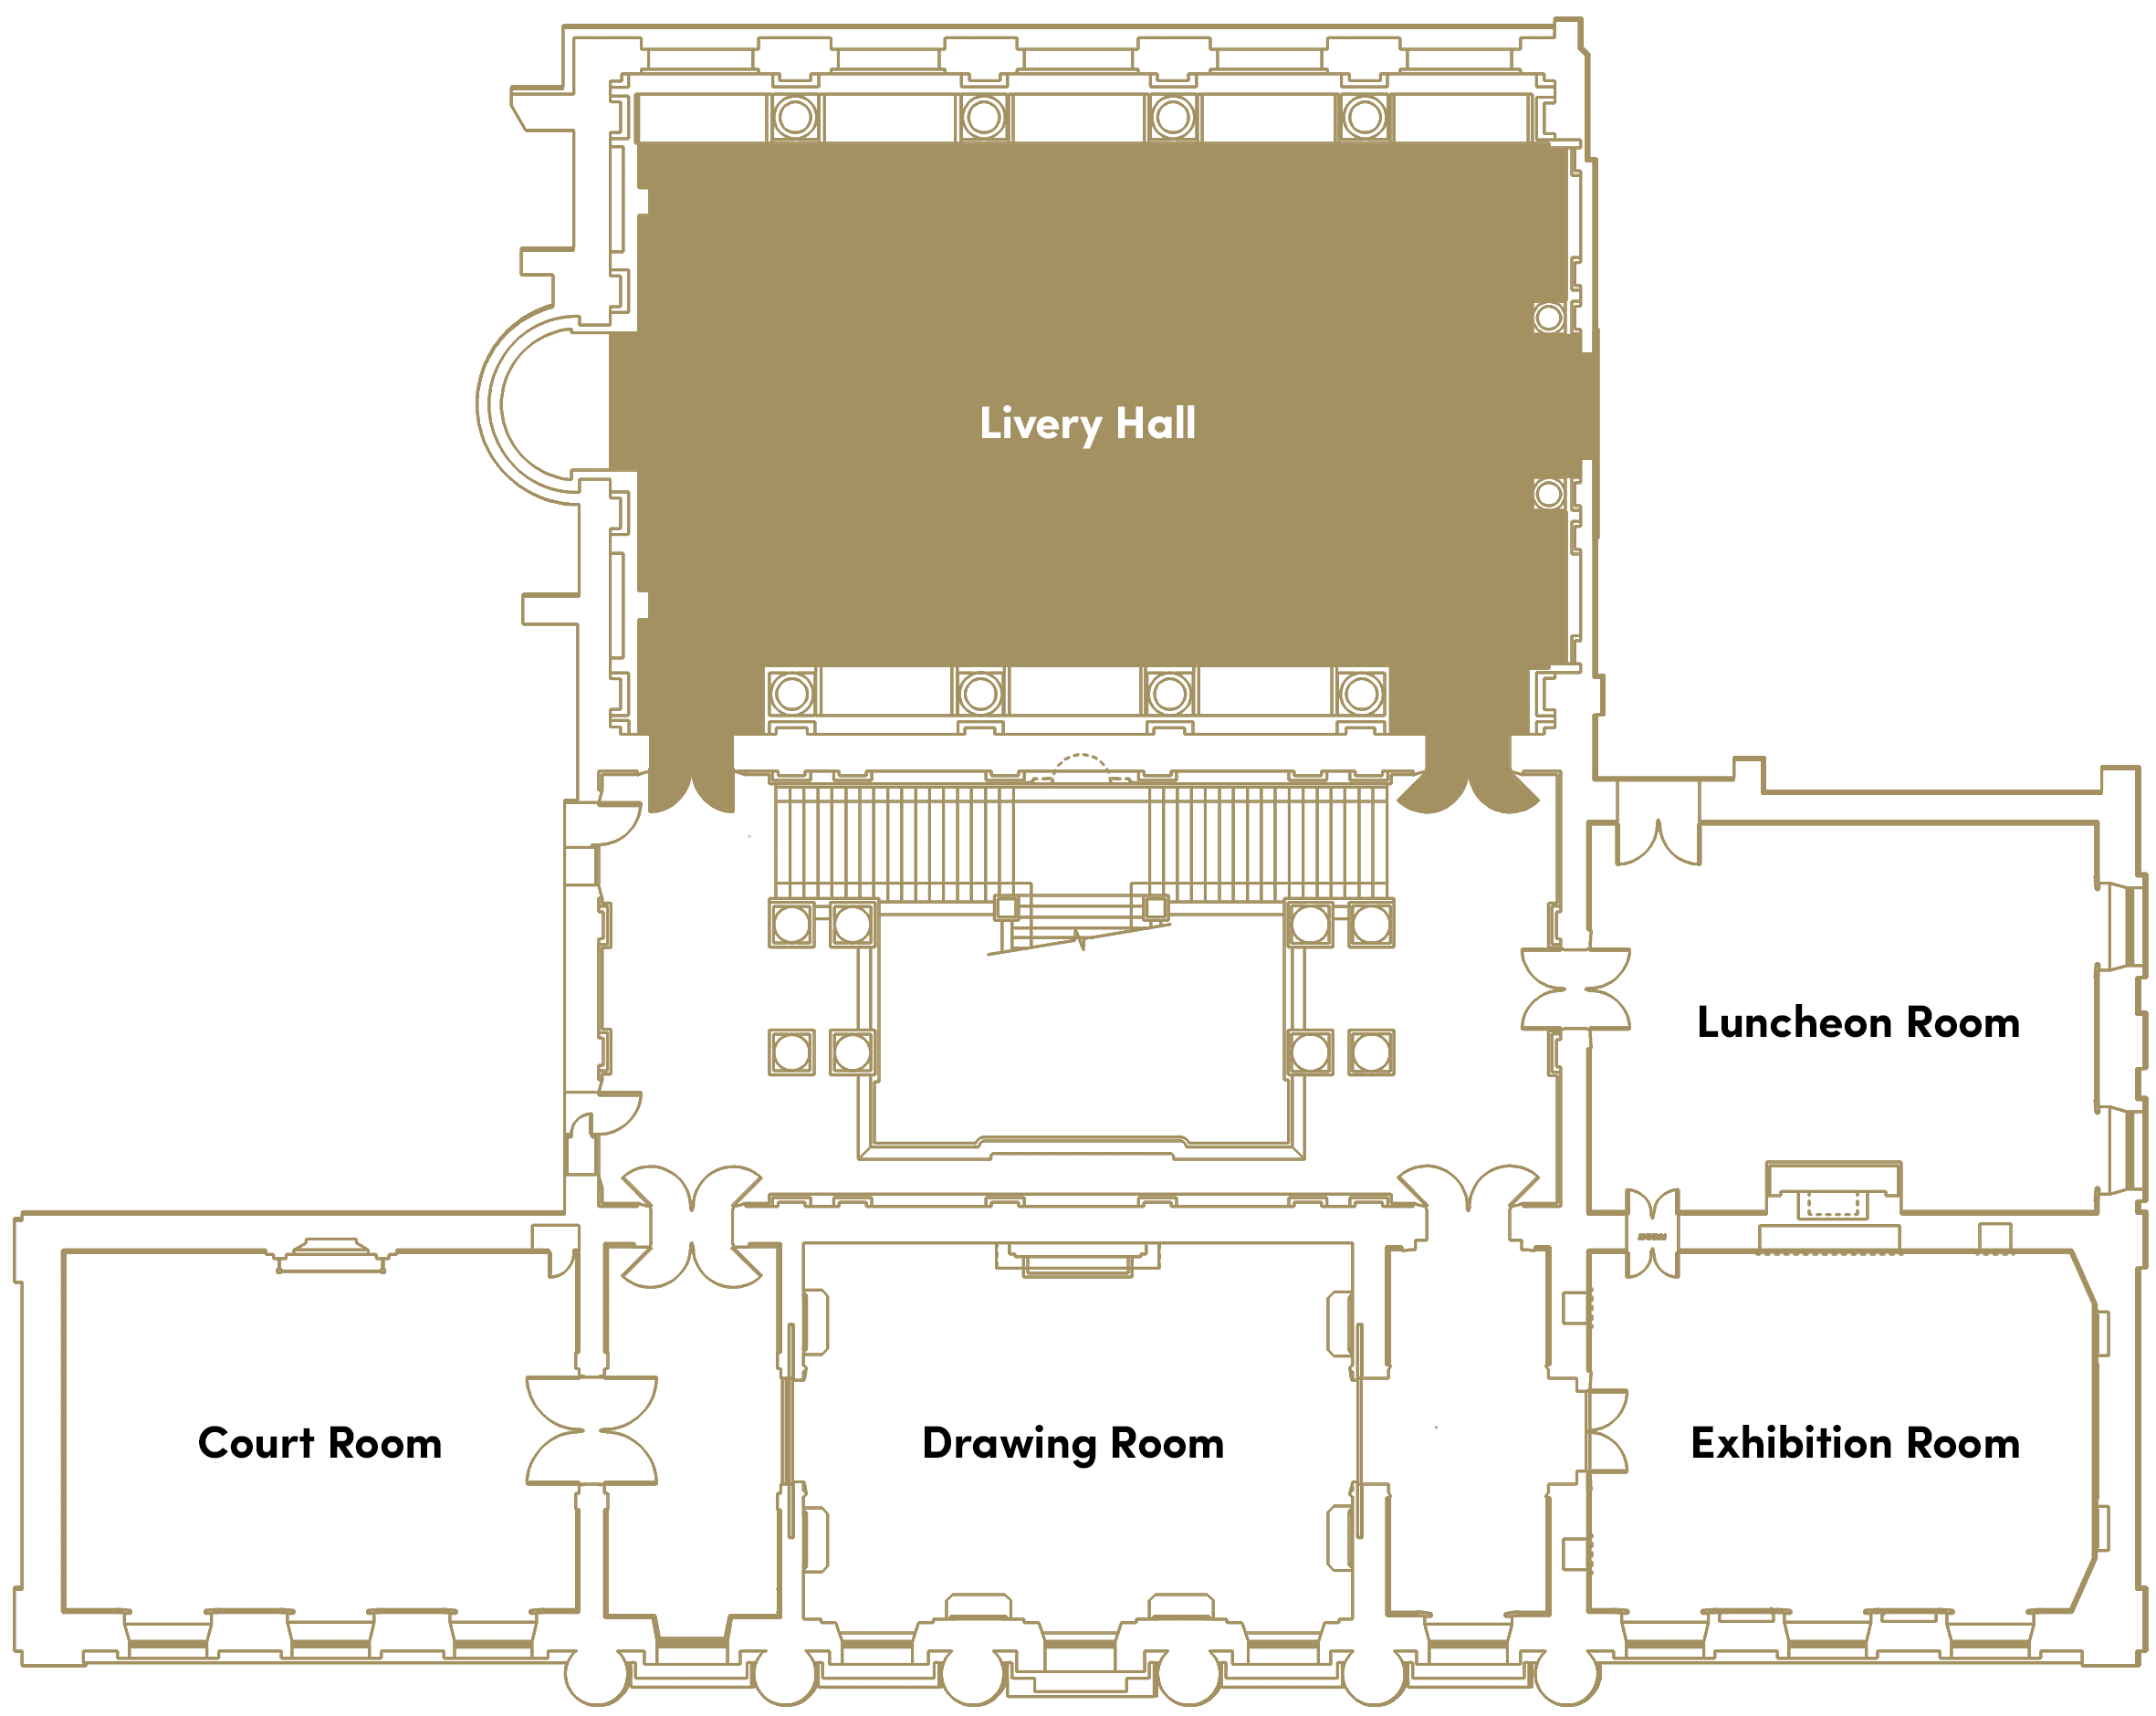 Venue Hire - The Goldsmiths' Company on old victorian house floor plans, 19th century mansion floor plans, 18 century victorian house plans,